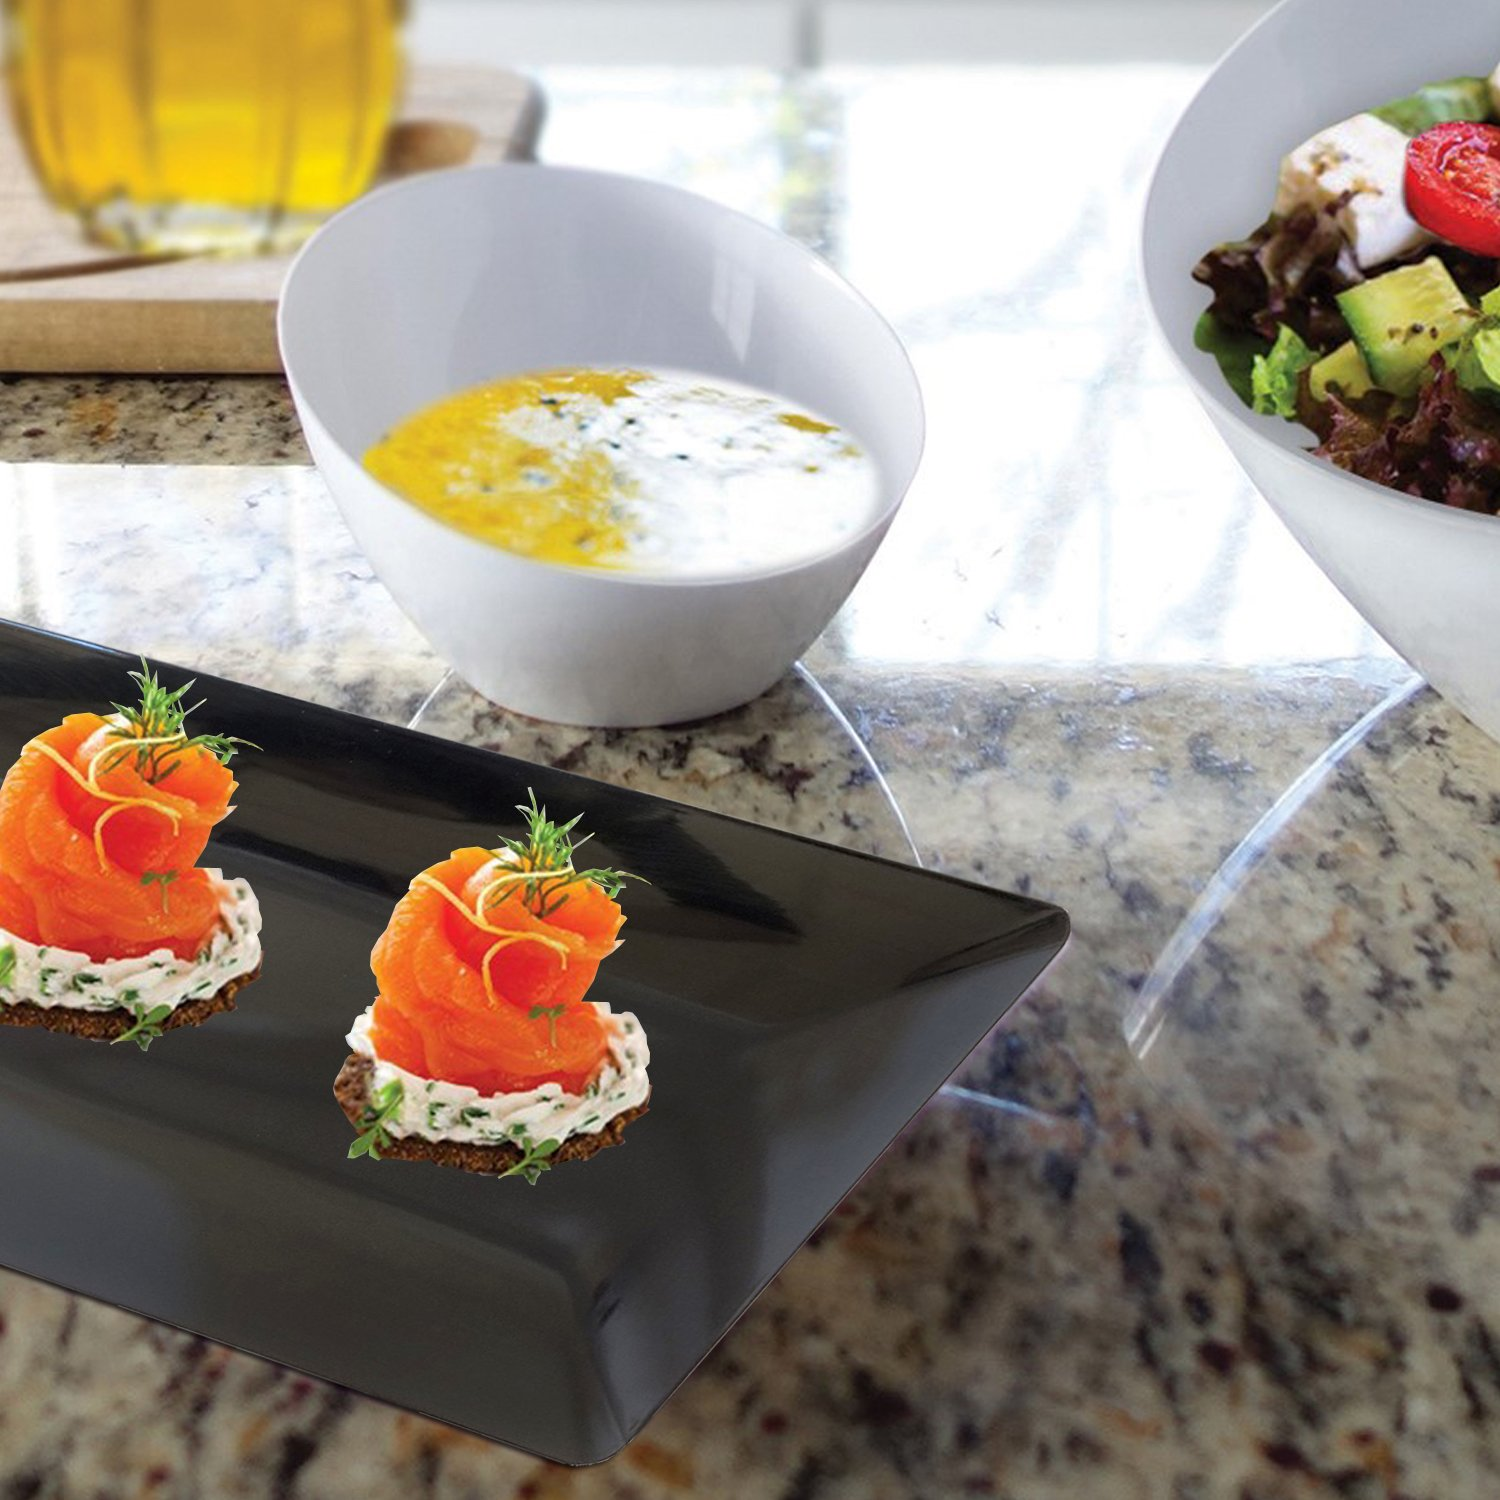 Pack of 2 Party Essentials White Hard Plastic Sleek Appetizer//Serving Trays 15.75 x 6